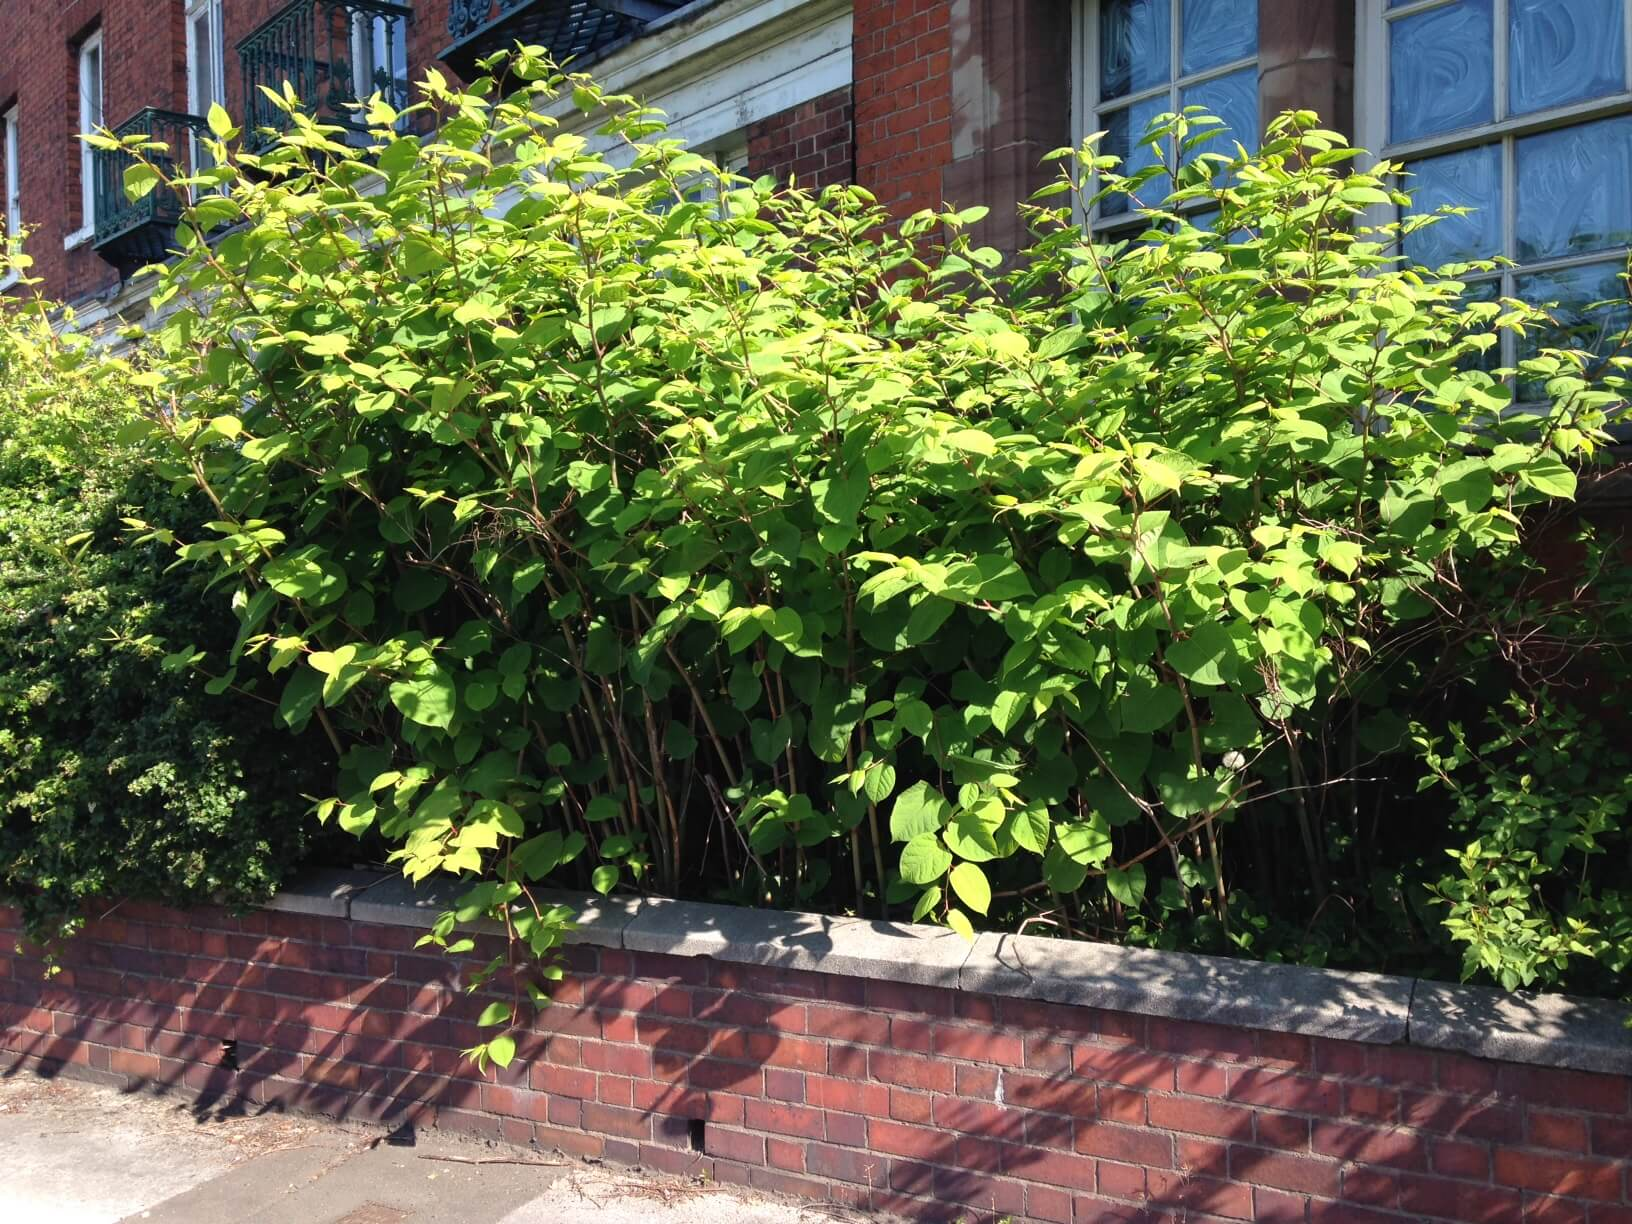 Japanese knotweed removal for Businesses - Staffordshire